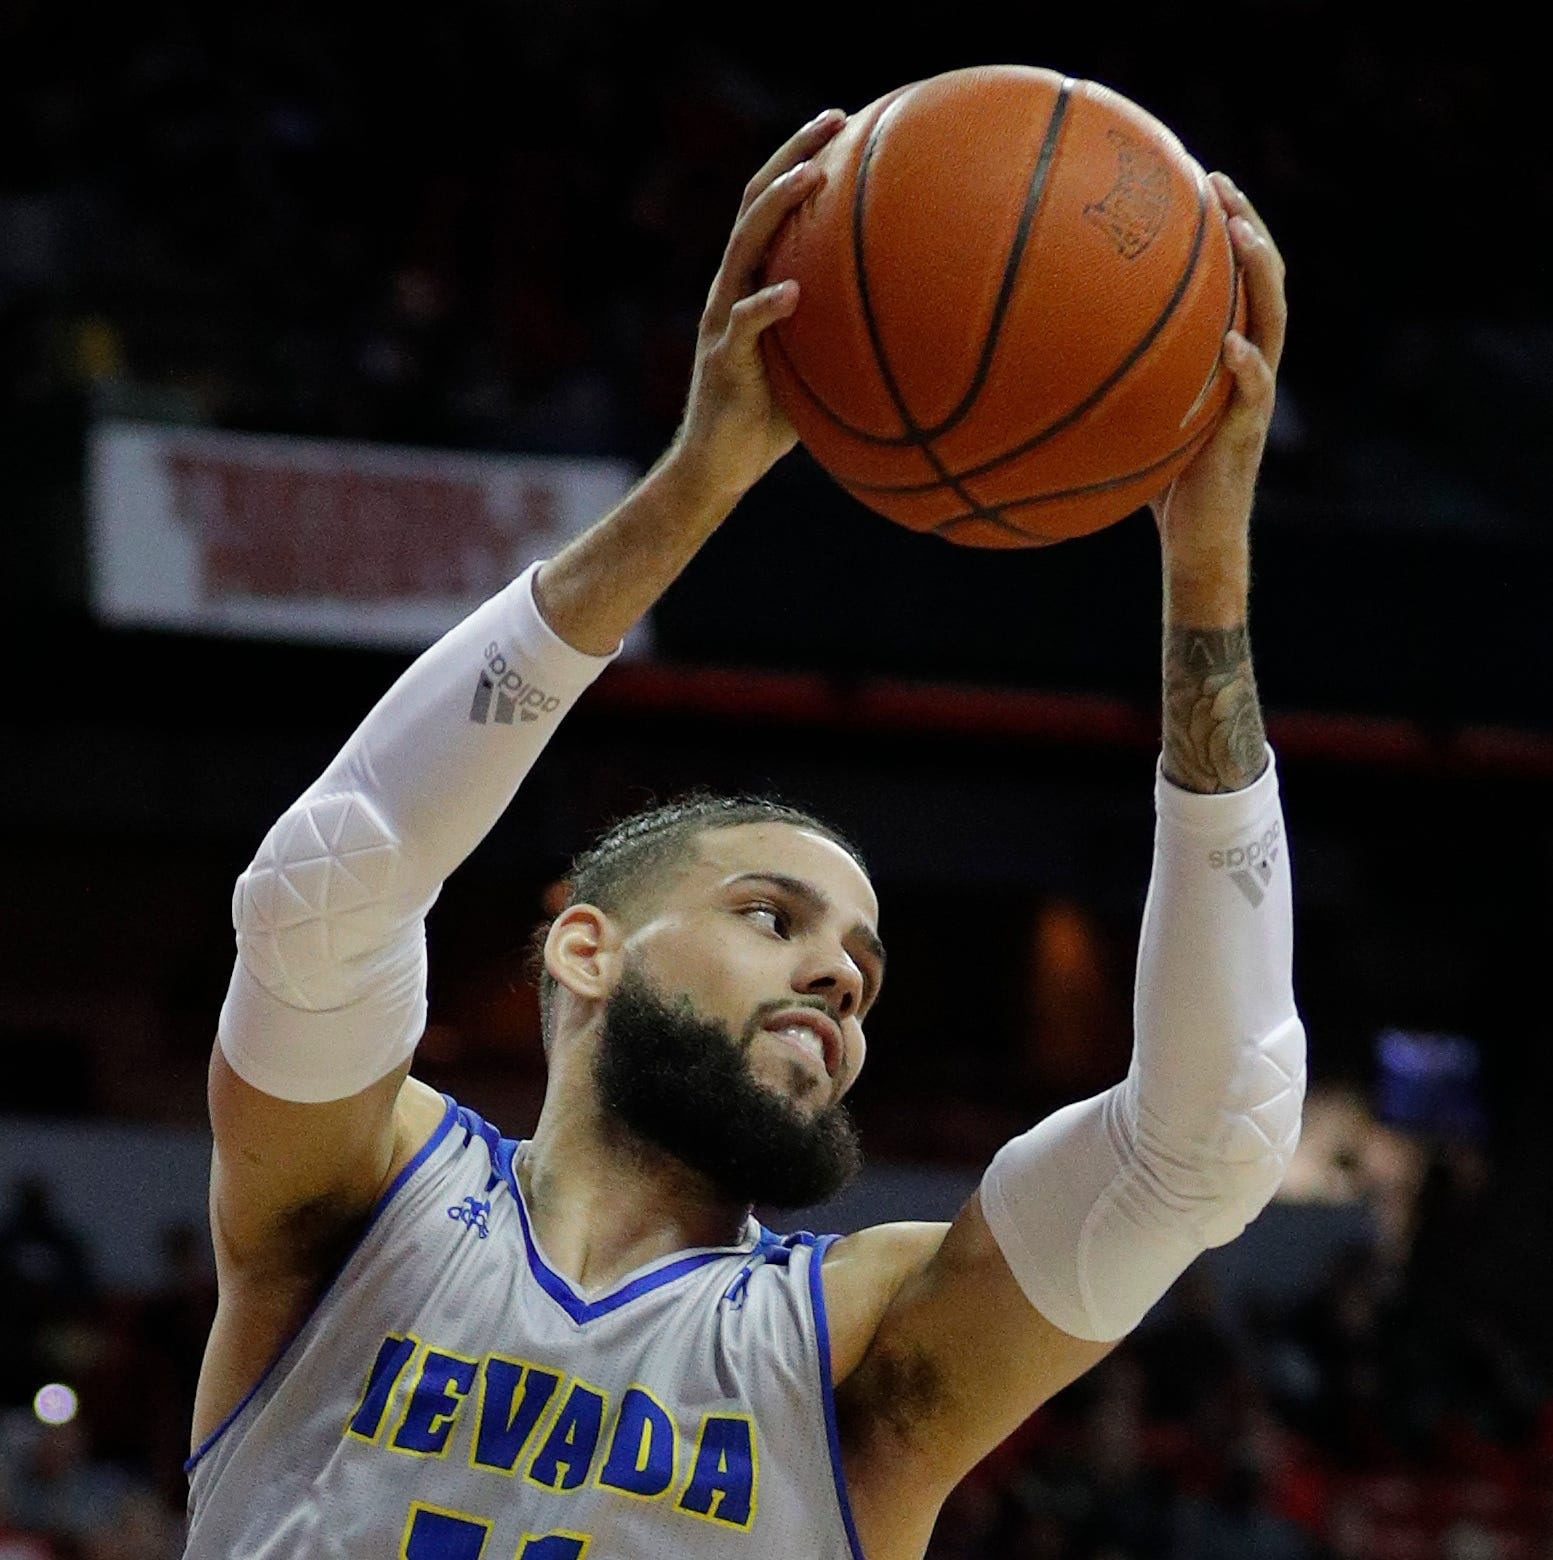 'All the baskets are for her': Who Nevada's Cody Martin dedicates his success to